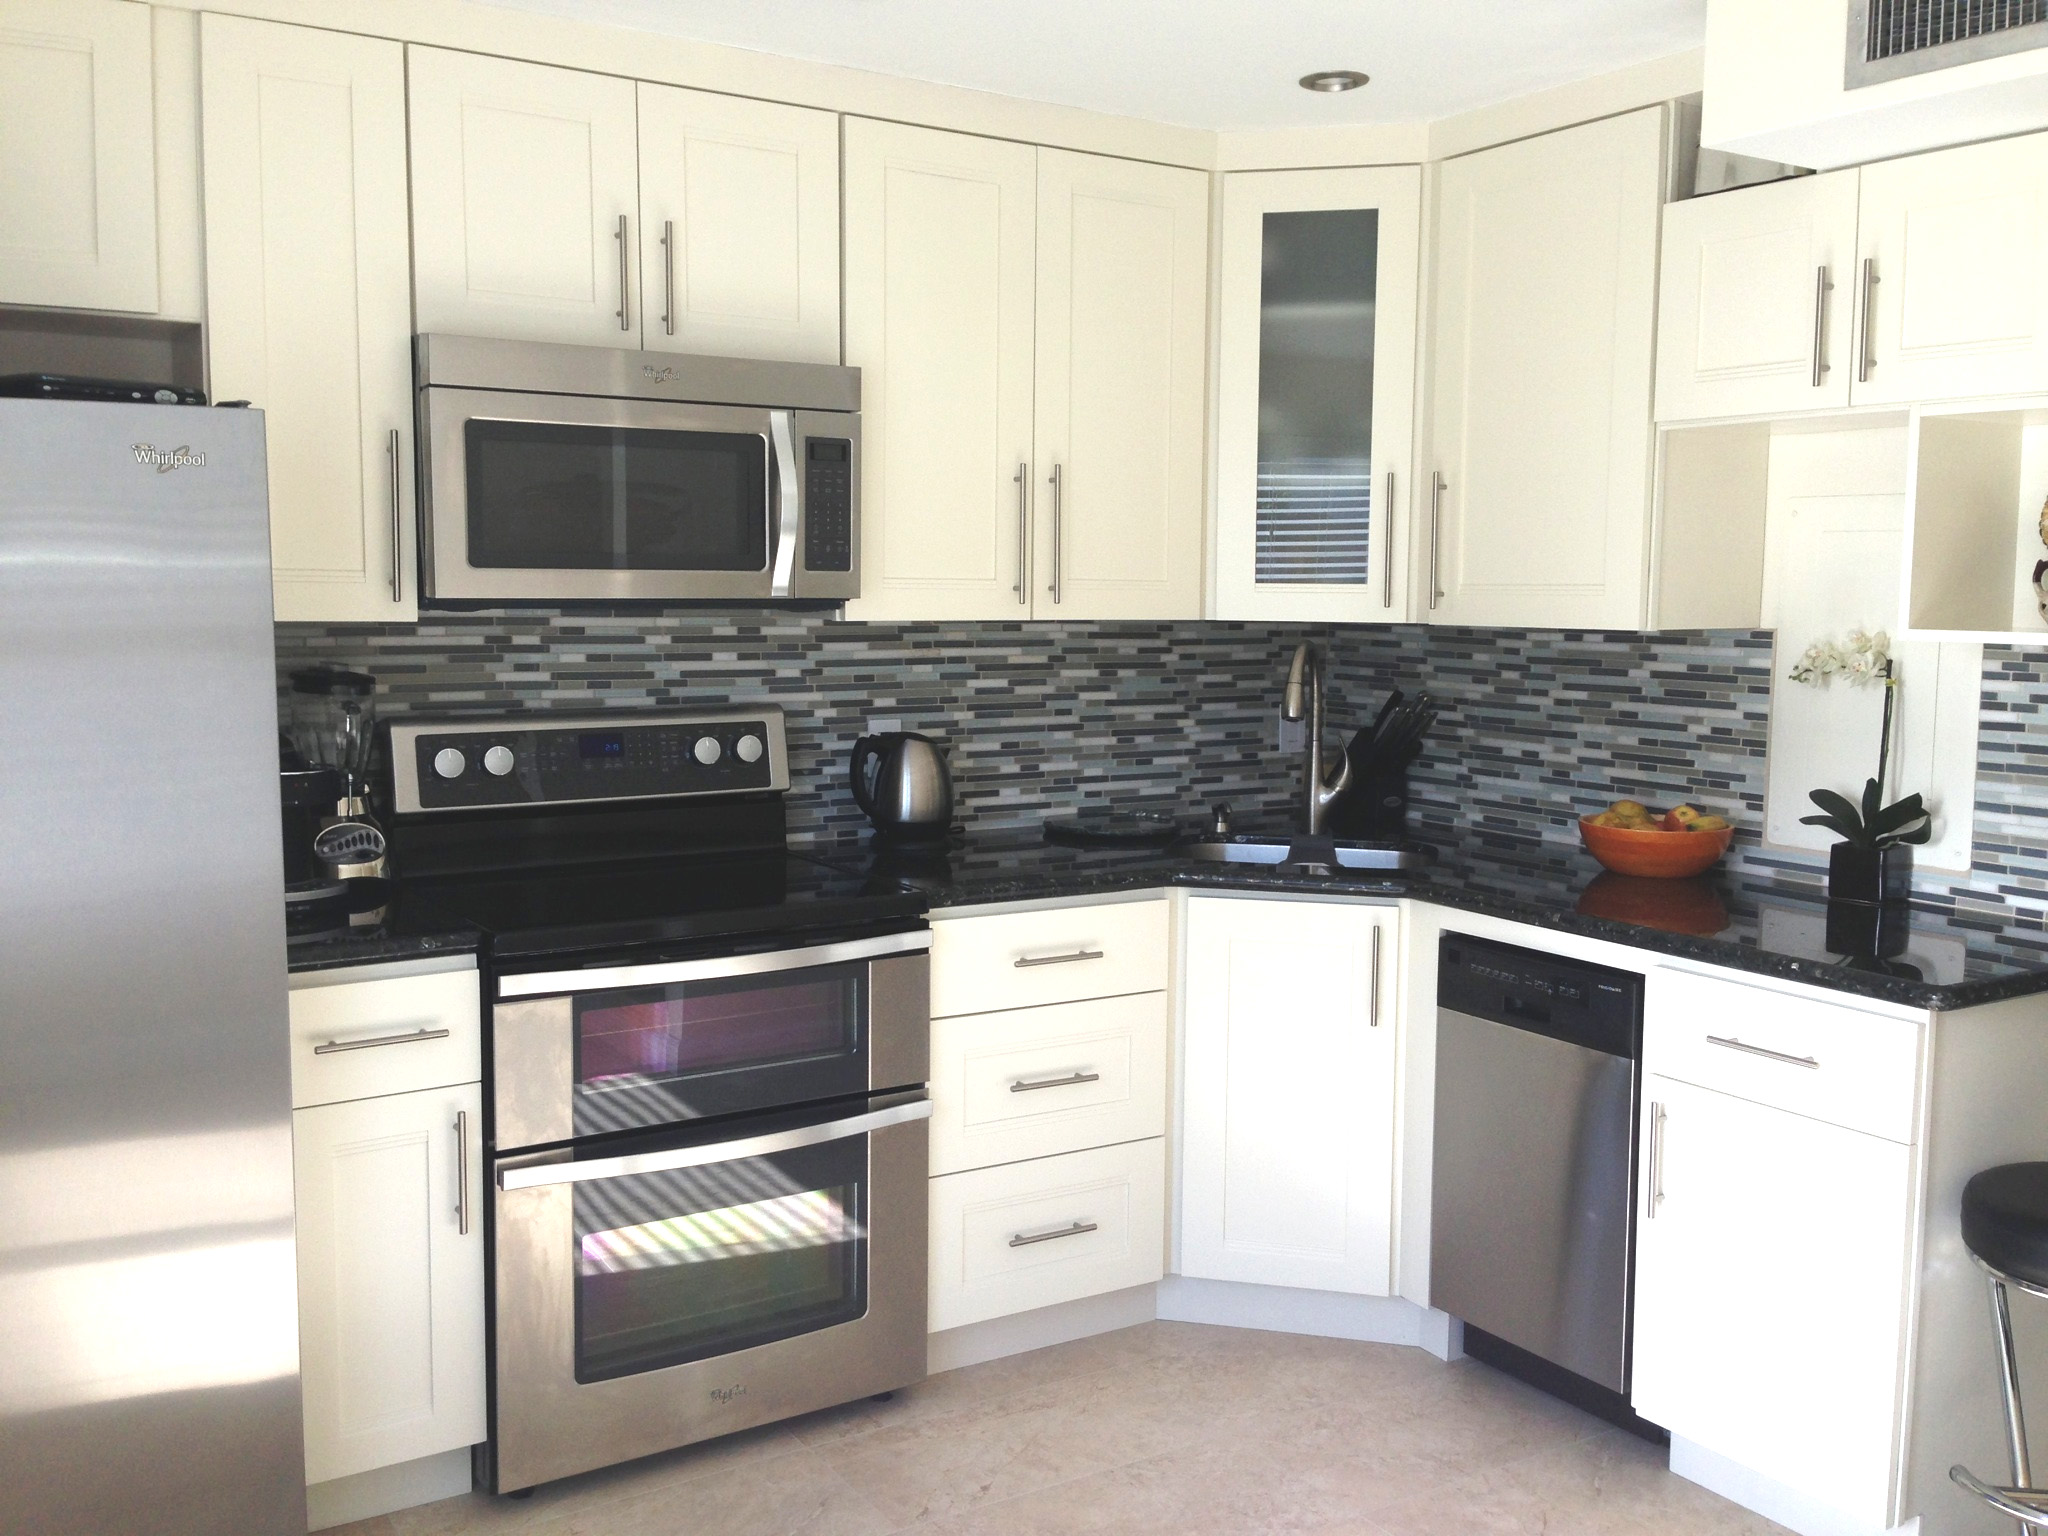 Classic kitchen cabinets off white kitchen units for Kitchen cabinets hialeah